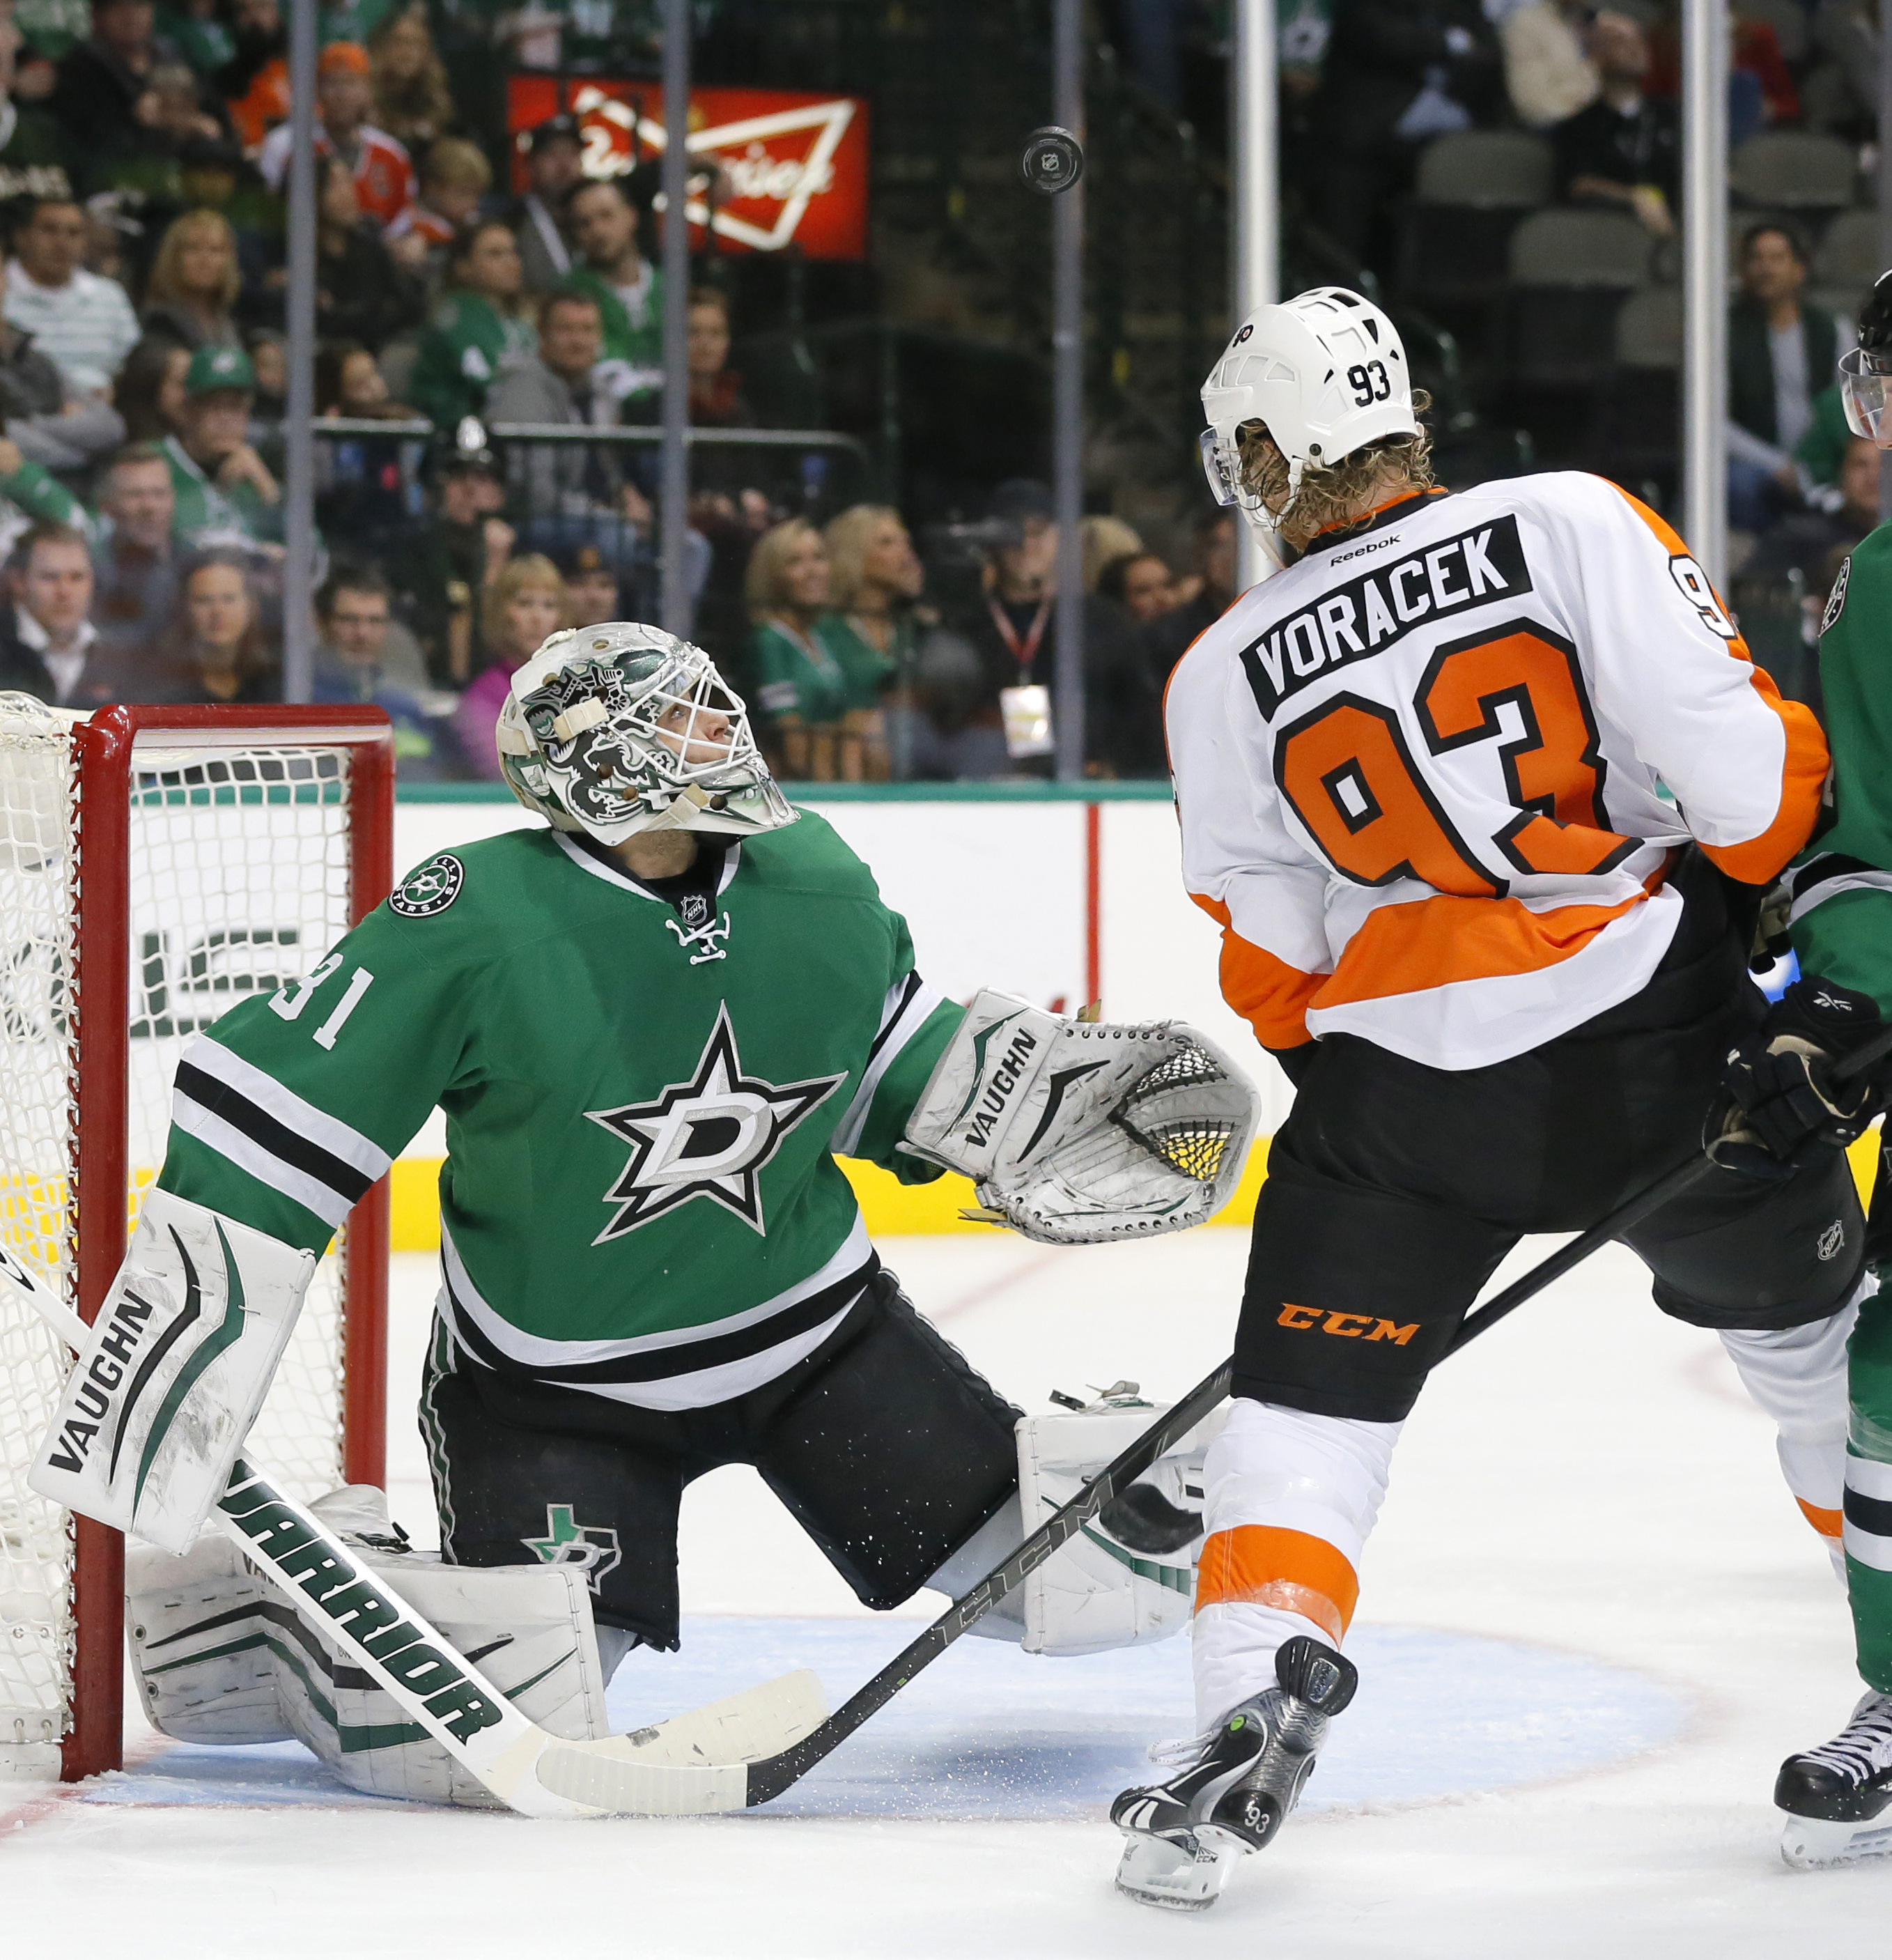 Dallas Stars goalie Antti Niemi (31), of Finland, watches the airborne puck after a shot by Philadelphia Flyers right wing Jakub Voracek (93), of the Czech Republic, in the second period of an NHL hockey game, Friday, Dec. 11, 2015, in Dallas. (AP Photo/T